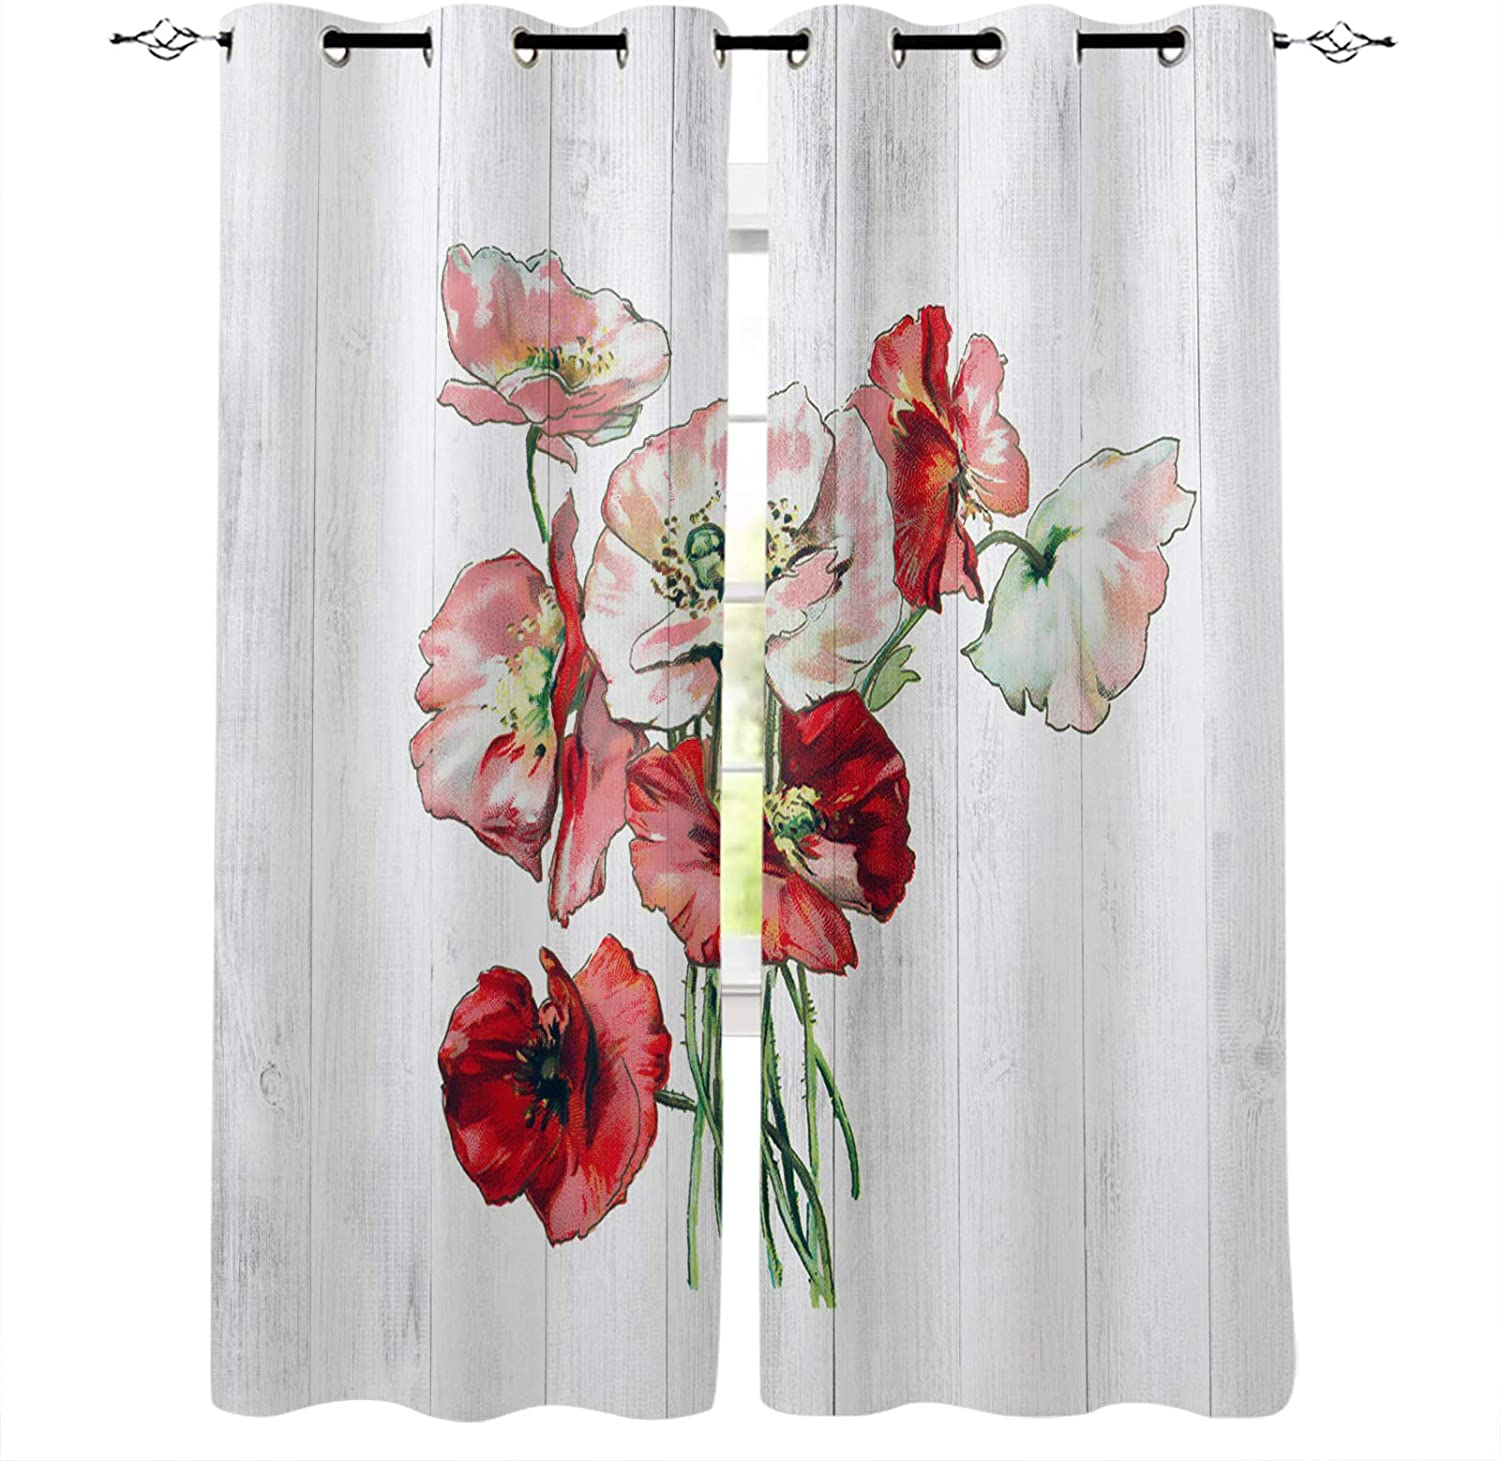 Blackout Curtains for Bedroom-Room sold out Darkening Thermal Branded goods C Insulated